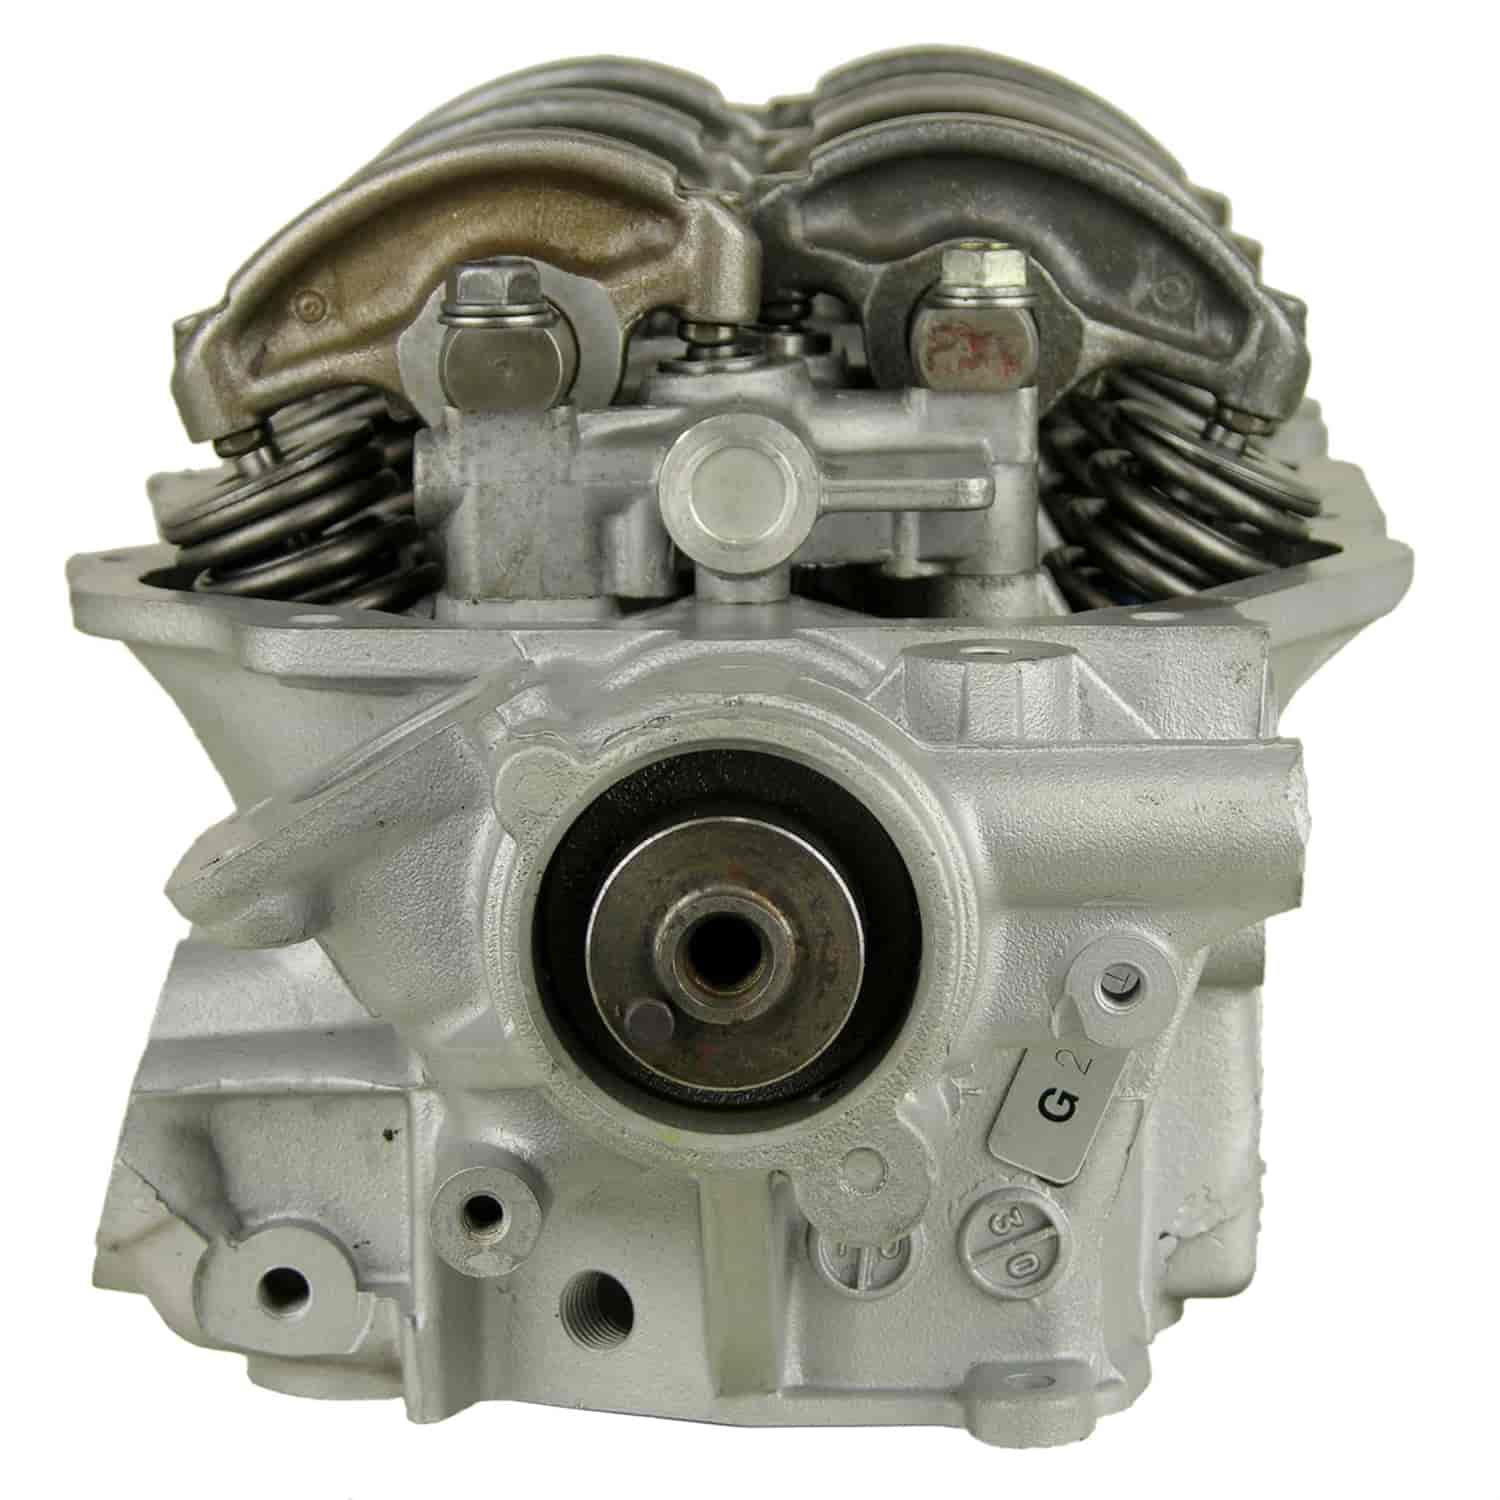 ATK Engines Remanufactured Cylinder Head for 1985-1996 Nissan/Infiniti with  3 0L V6 VG30